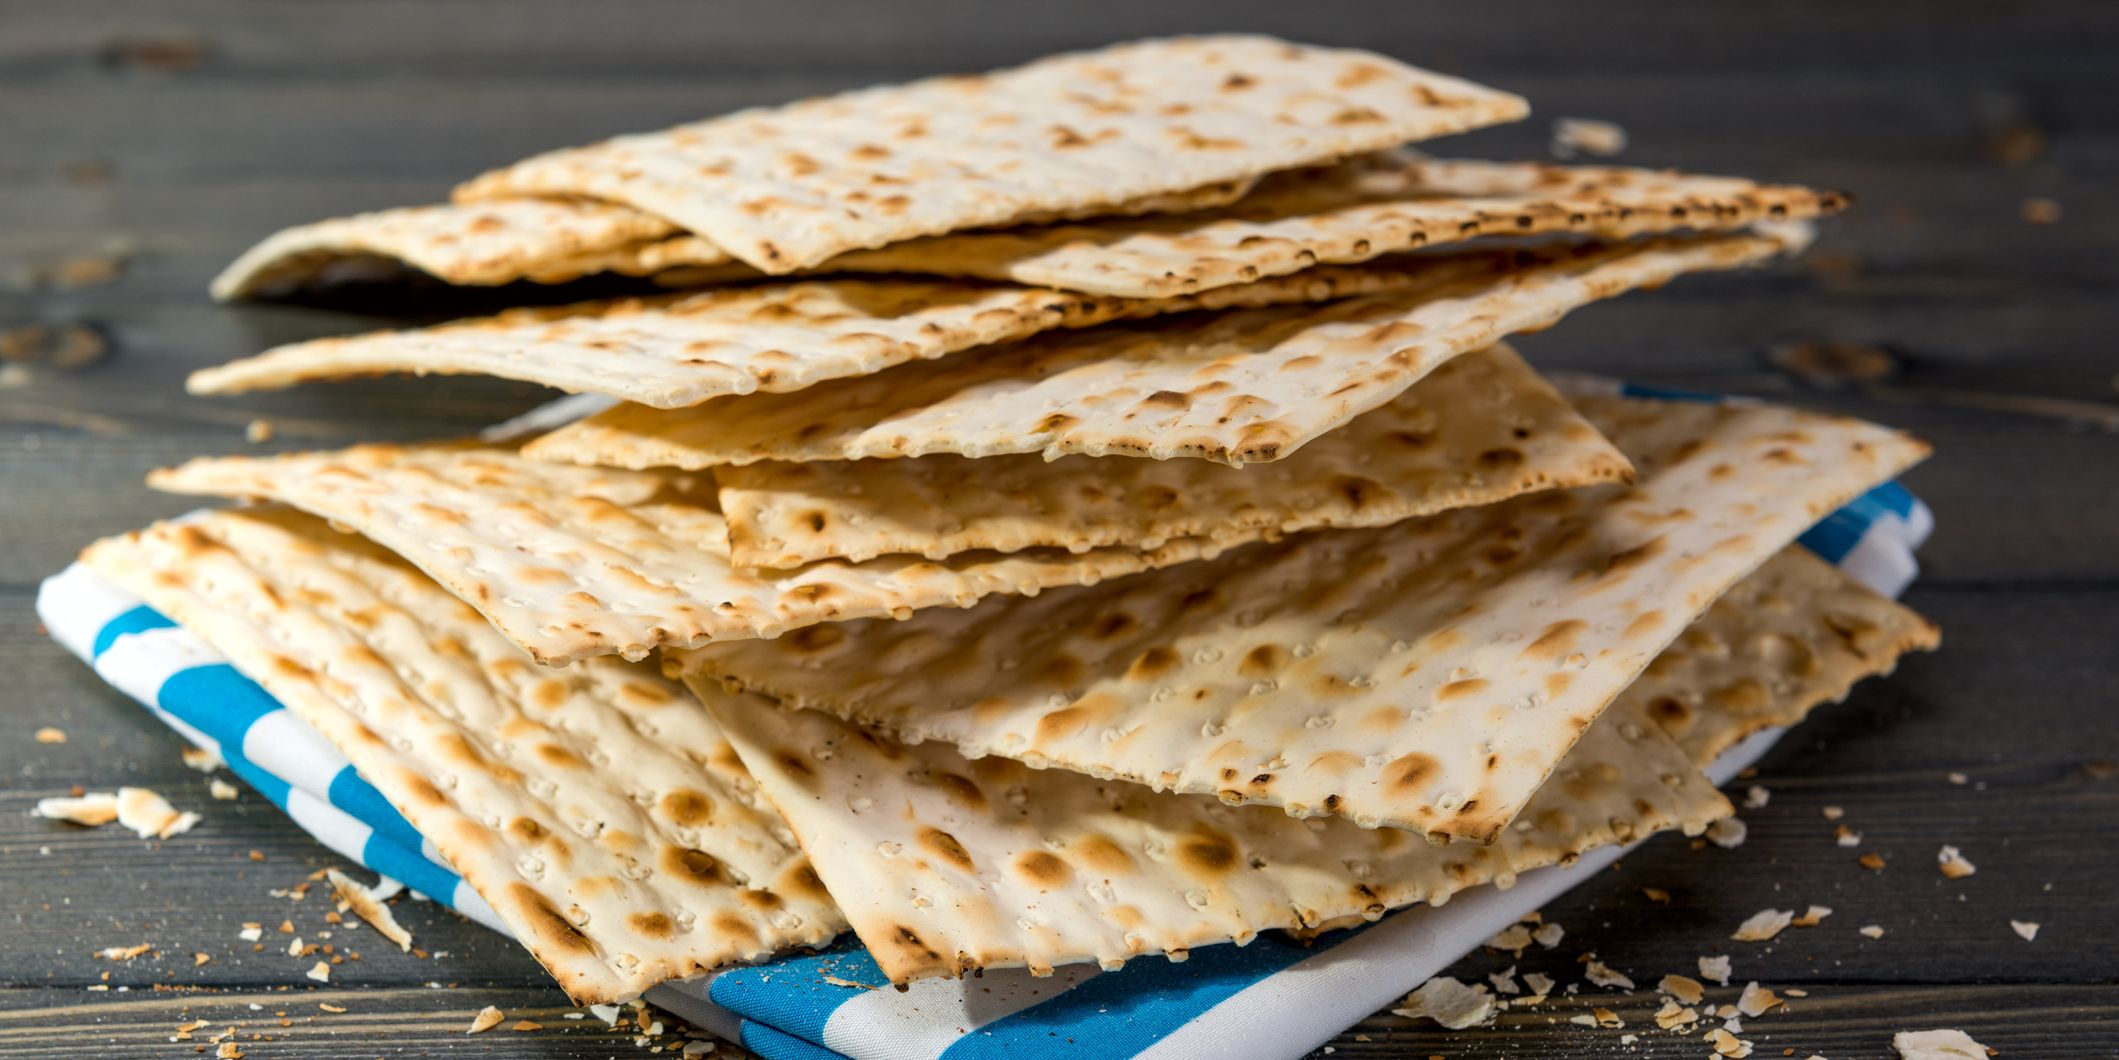 Matzo crackers